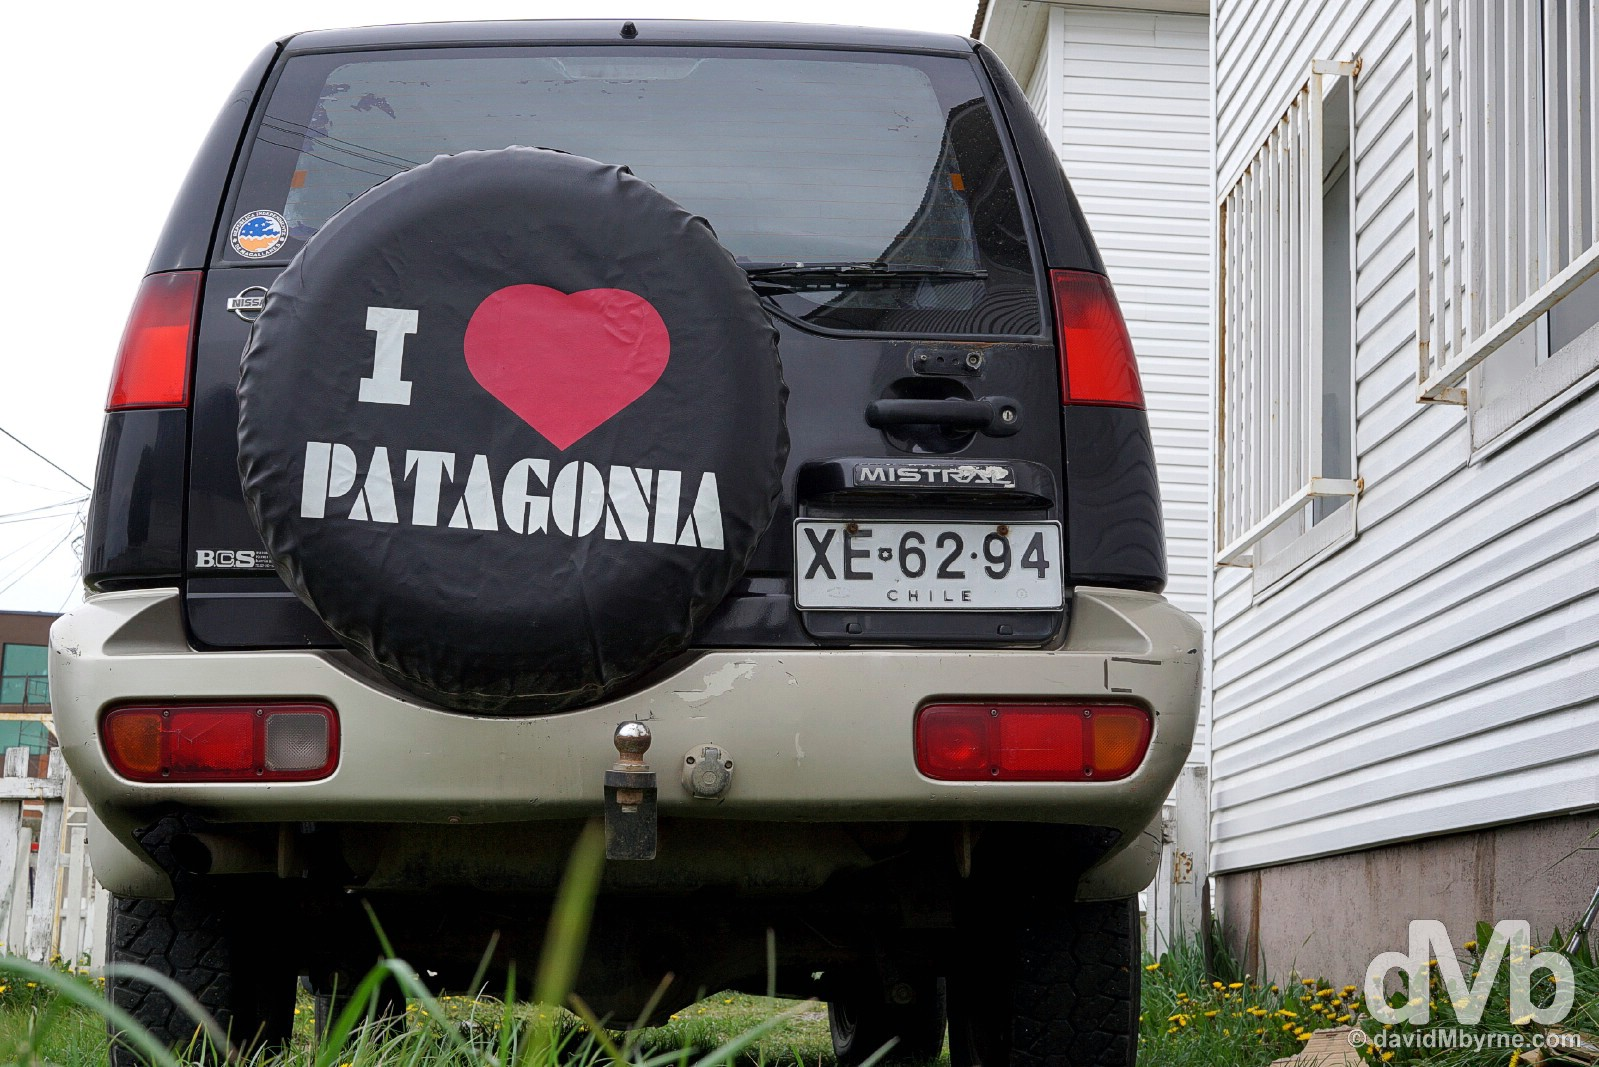 I Love Patagonia. Punta Arenas, Chile. November 10, 2015.